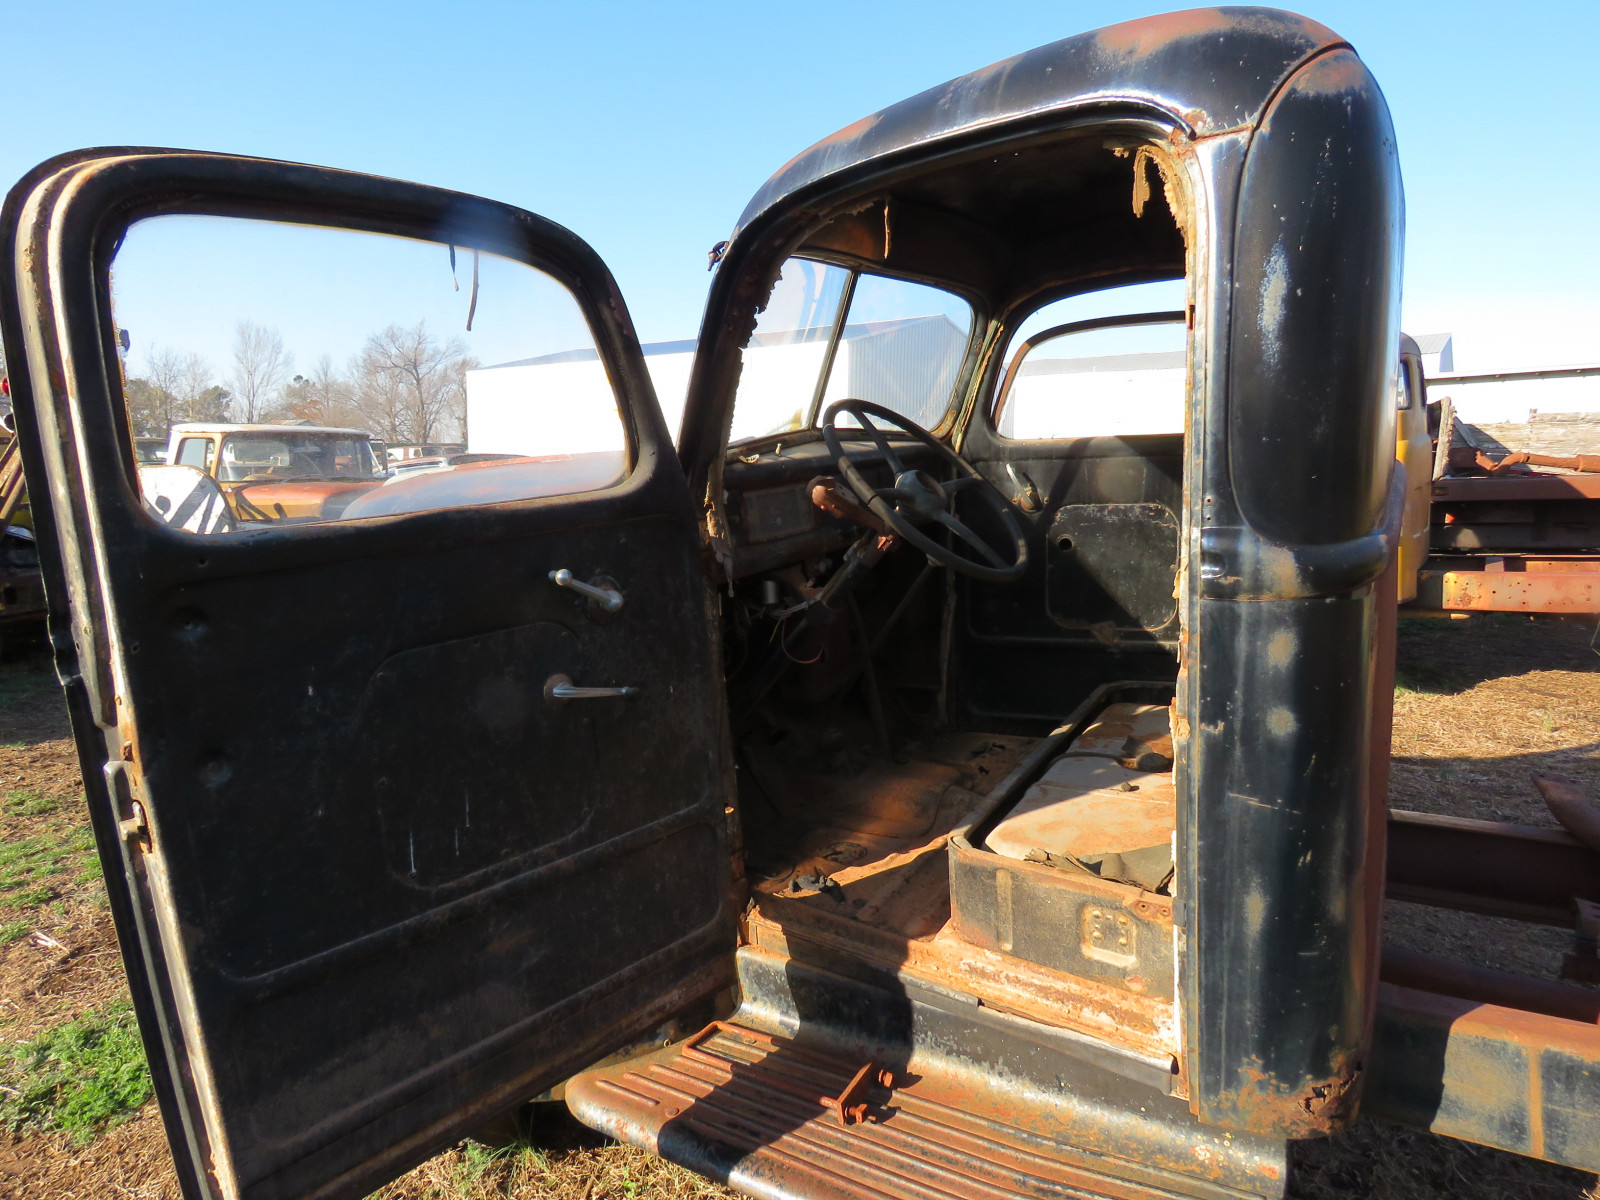 1946 Ford Truck - Image 6